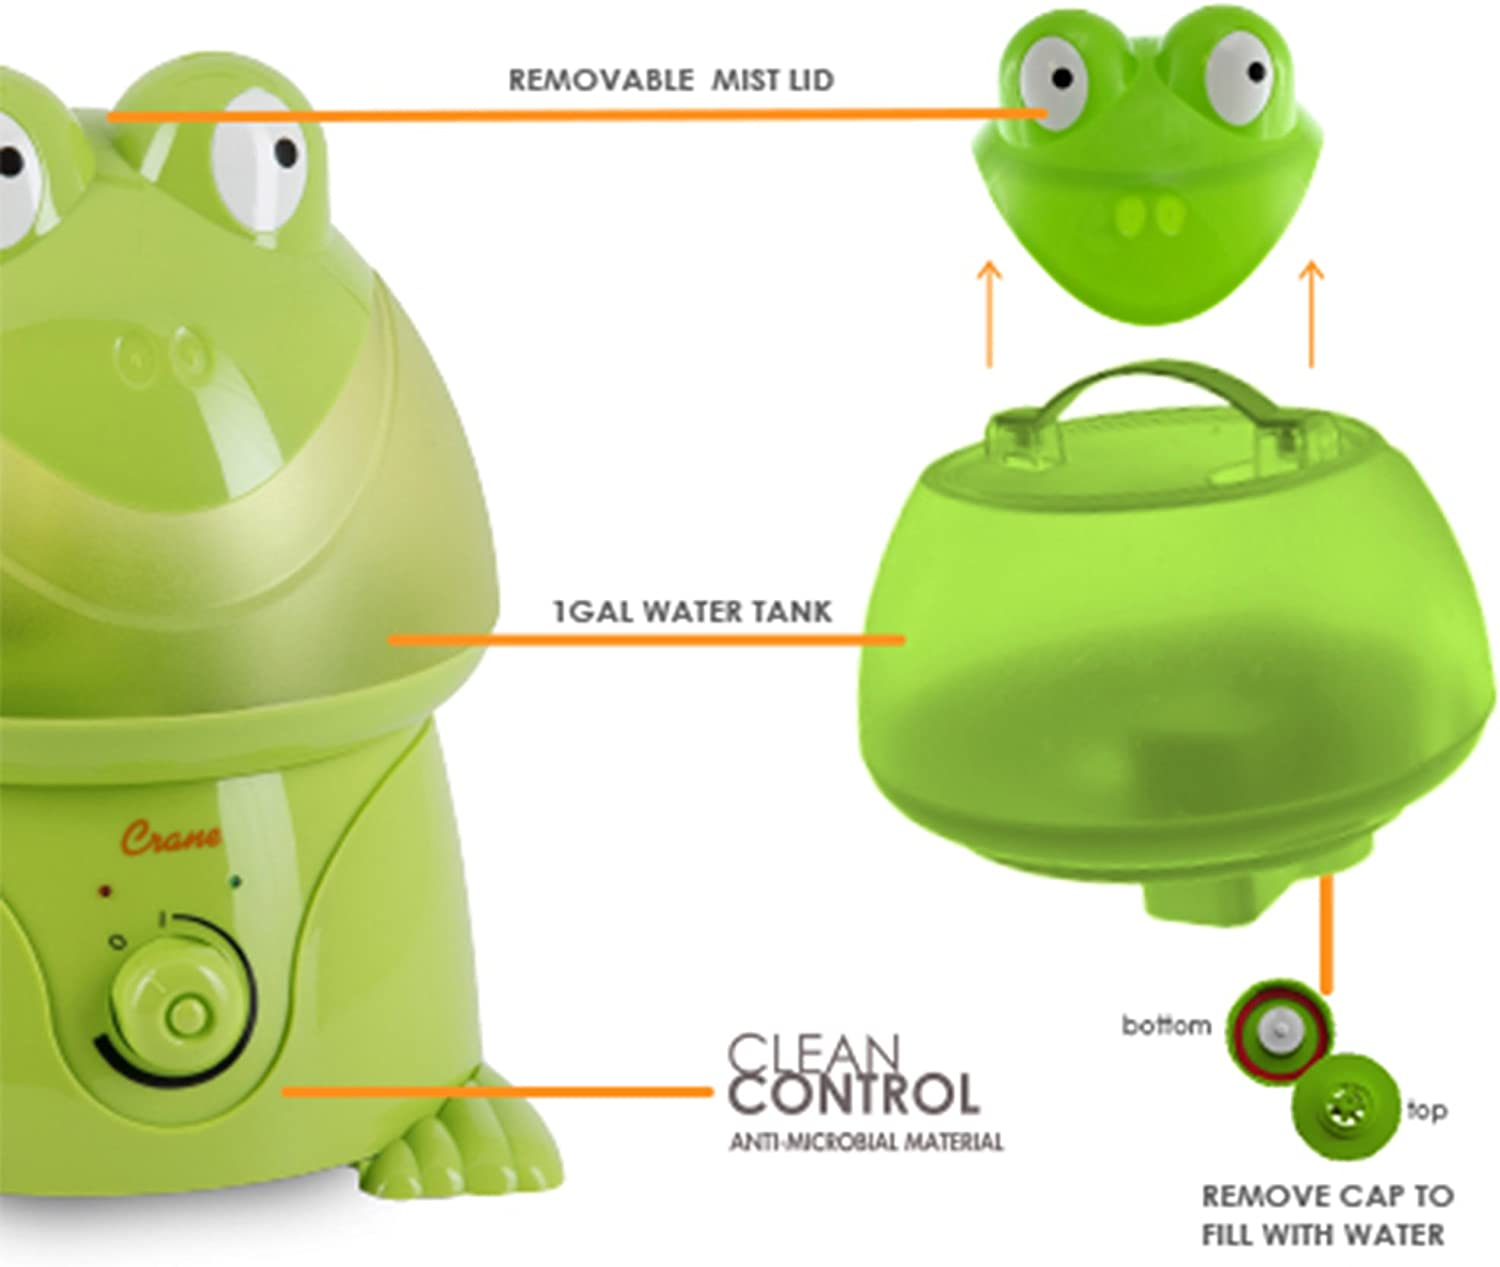 Crane Adorable Ultrasonic Cool Mist Humidifier with 2.1 Gallon Output per Day Frog